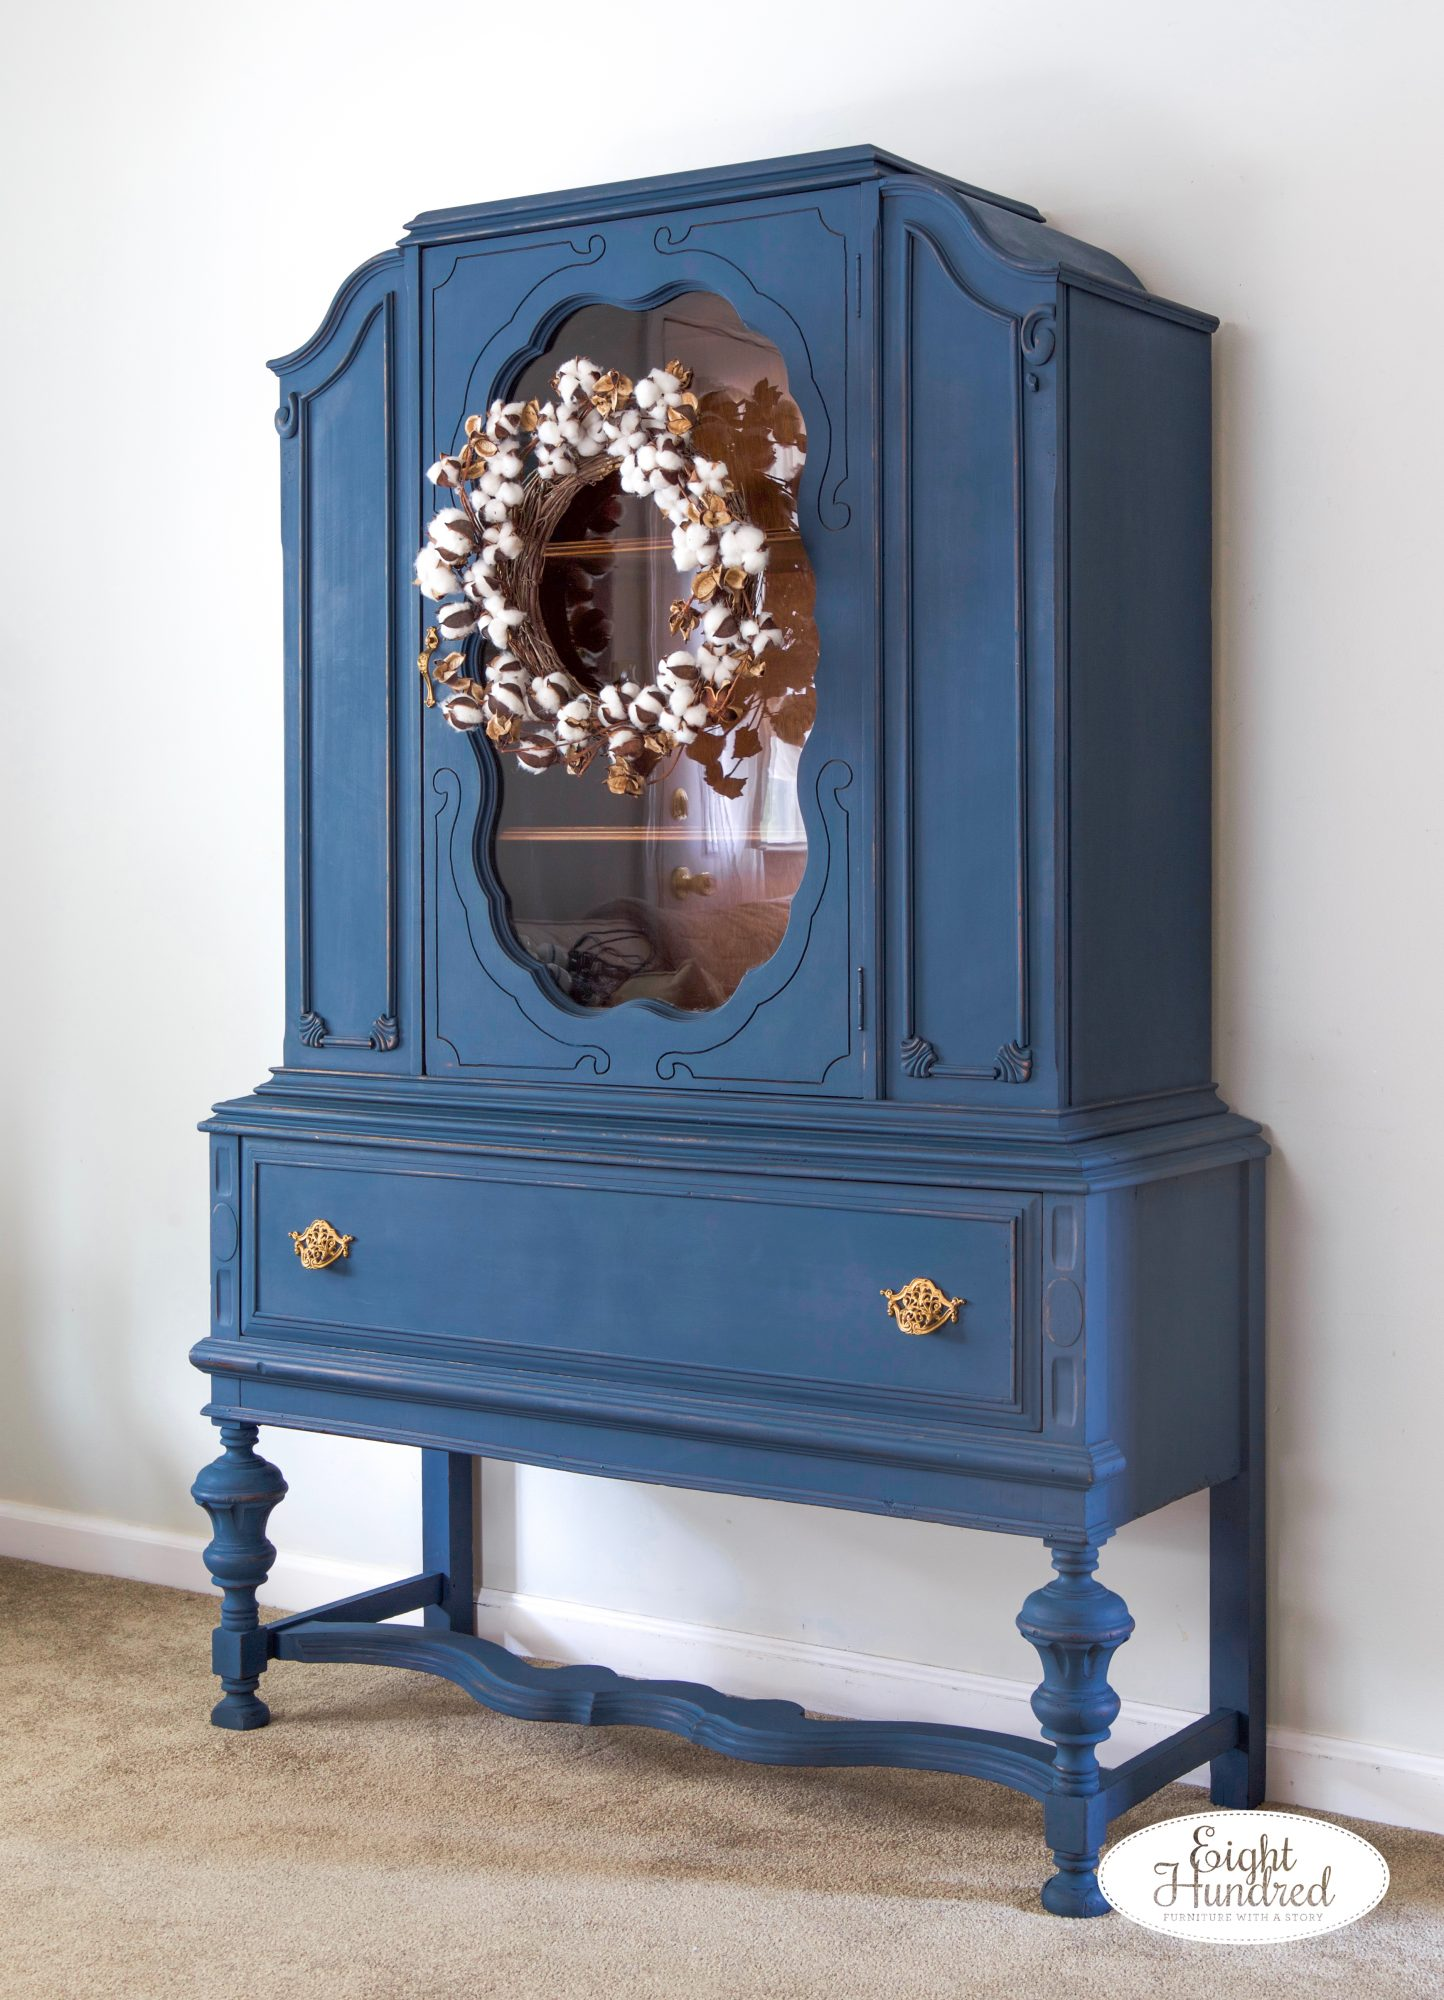 Side view of china cabinet painted in Flow Blue and Artissimo MMS Milk Paint by Eight Hundred Furniture